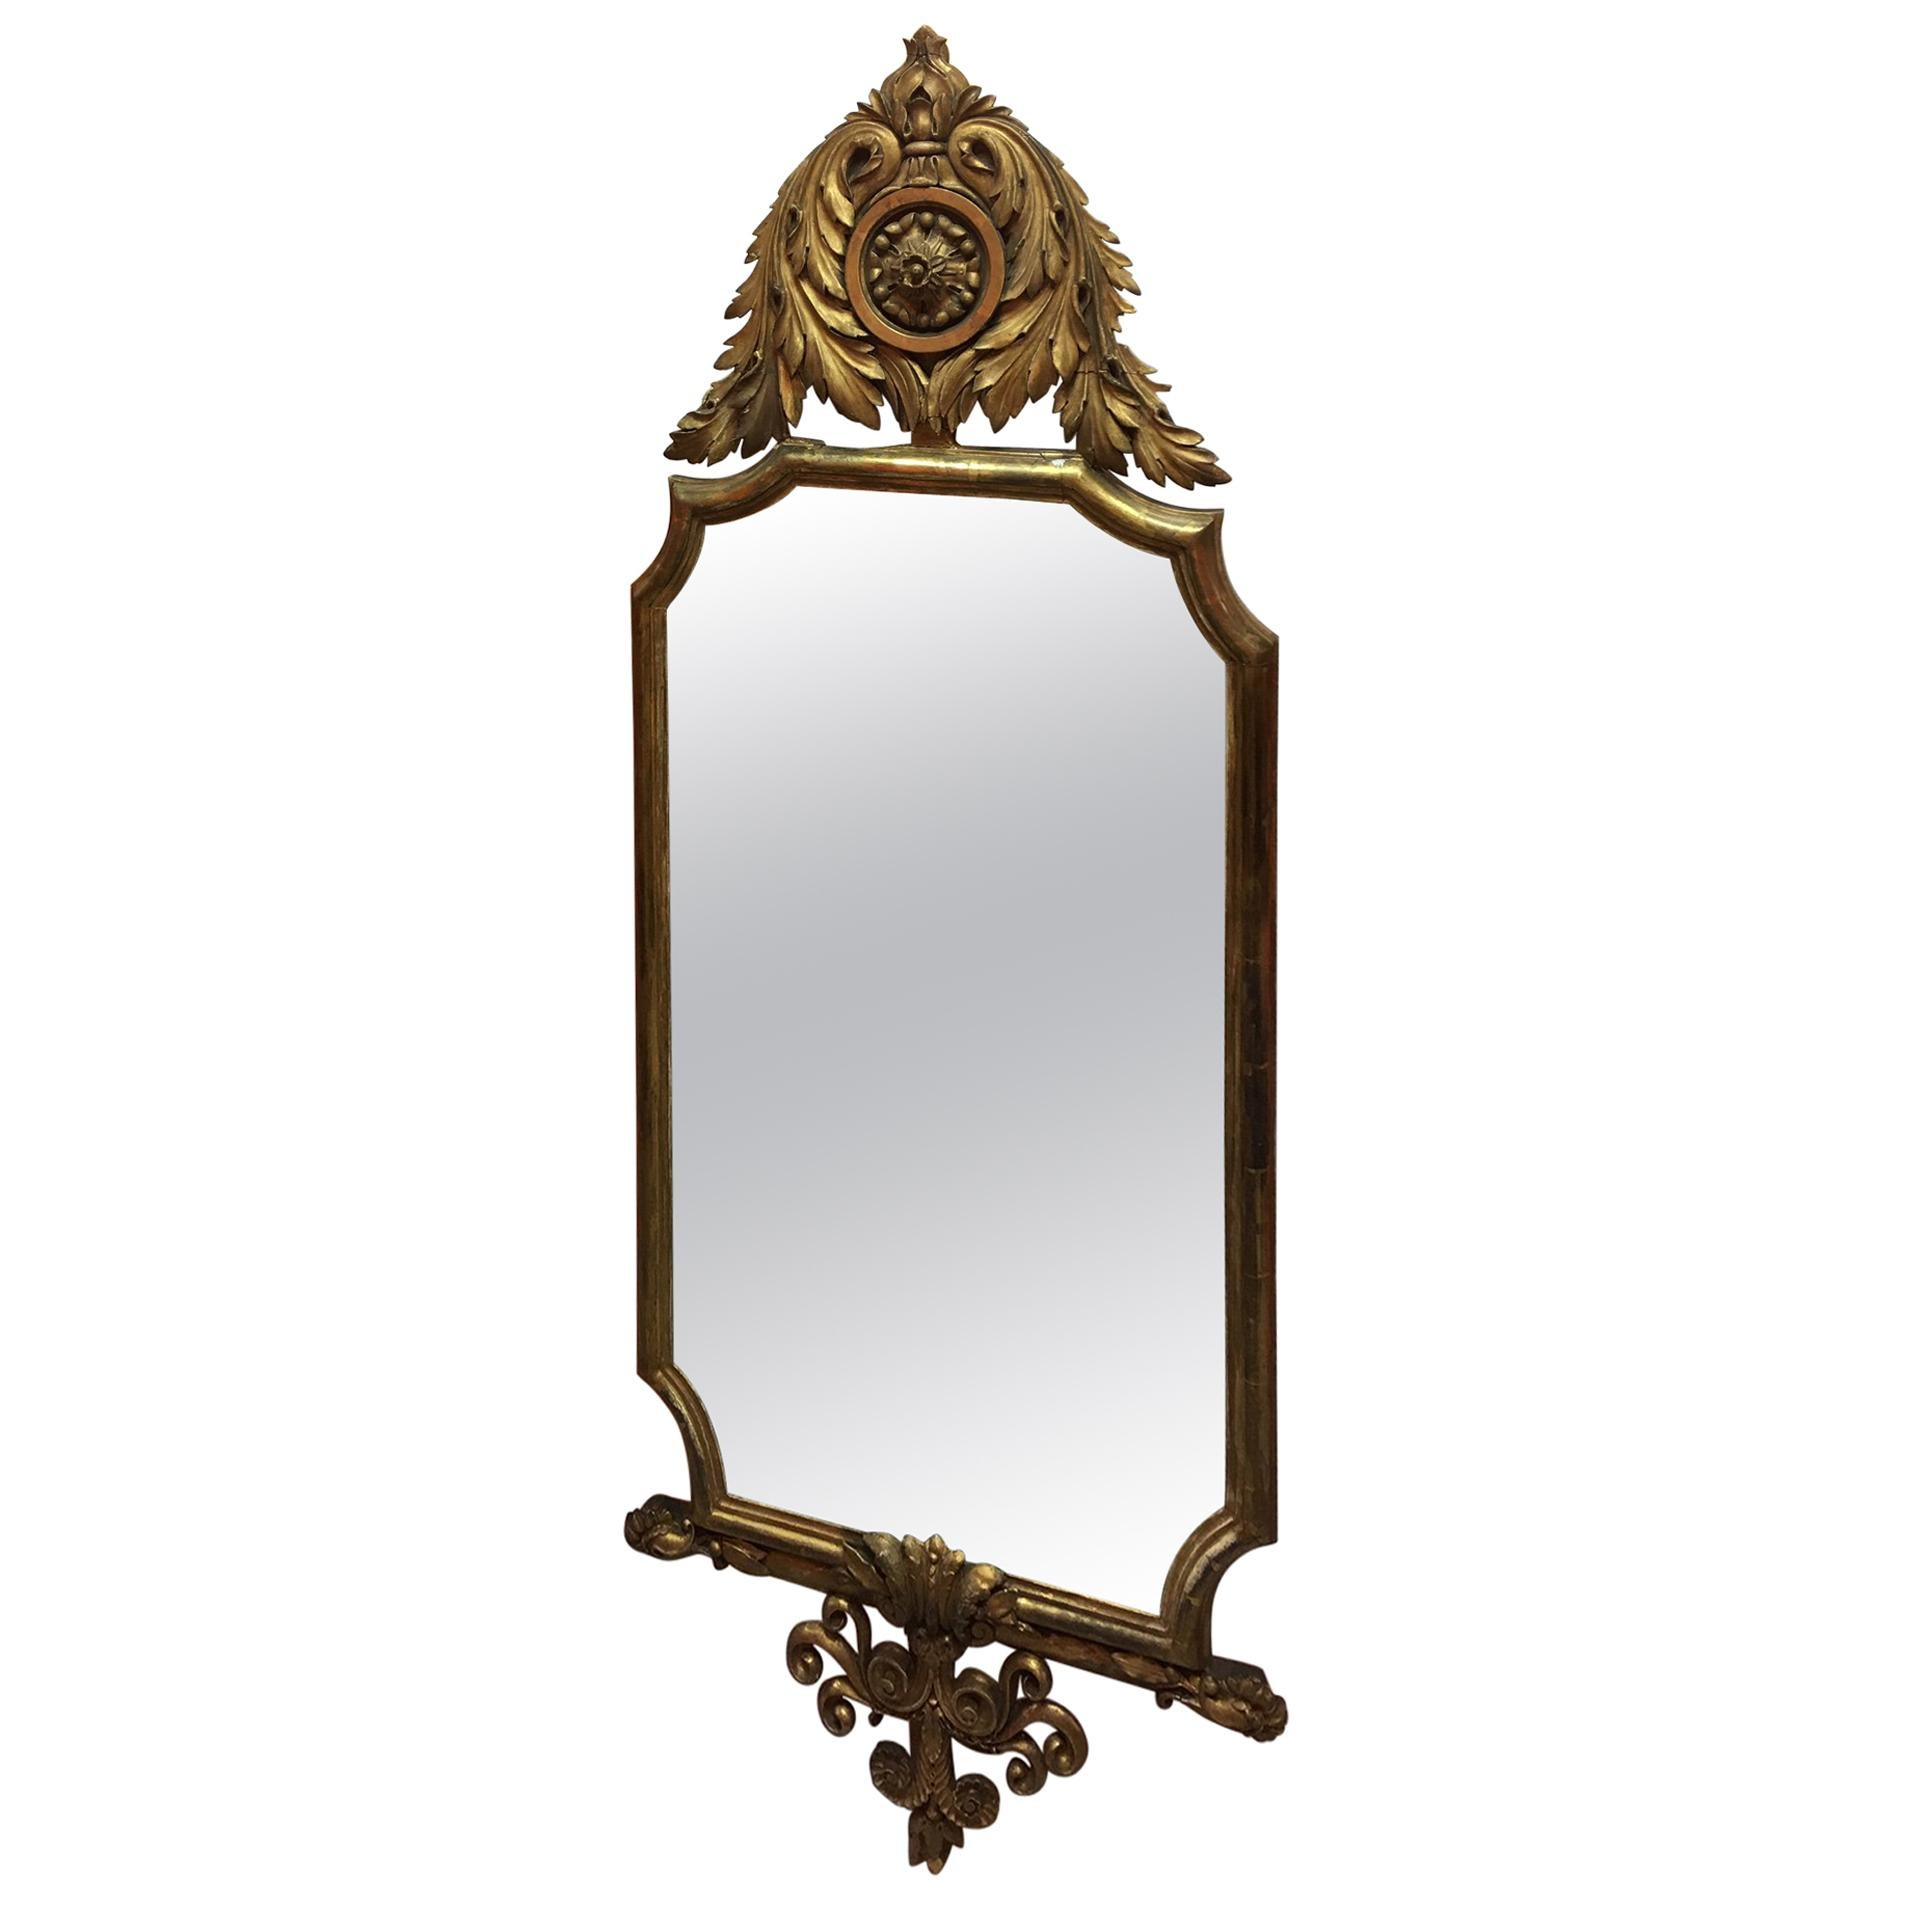 Pair of English Gold Leaf Mirrors with Acanthus Leaves and Scrolls, 19th Century